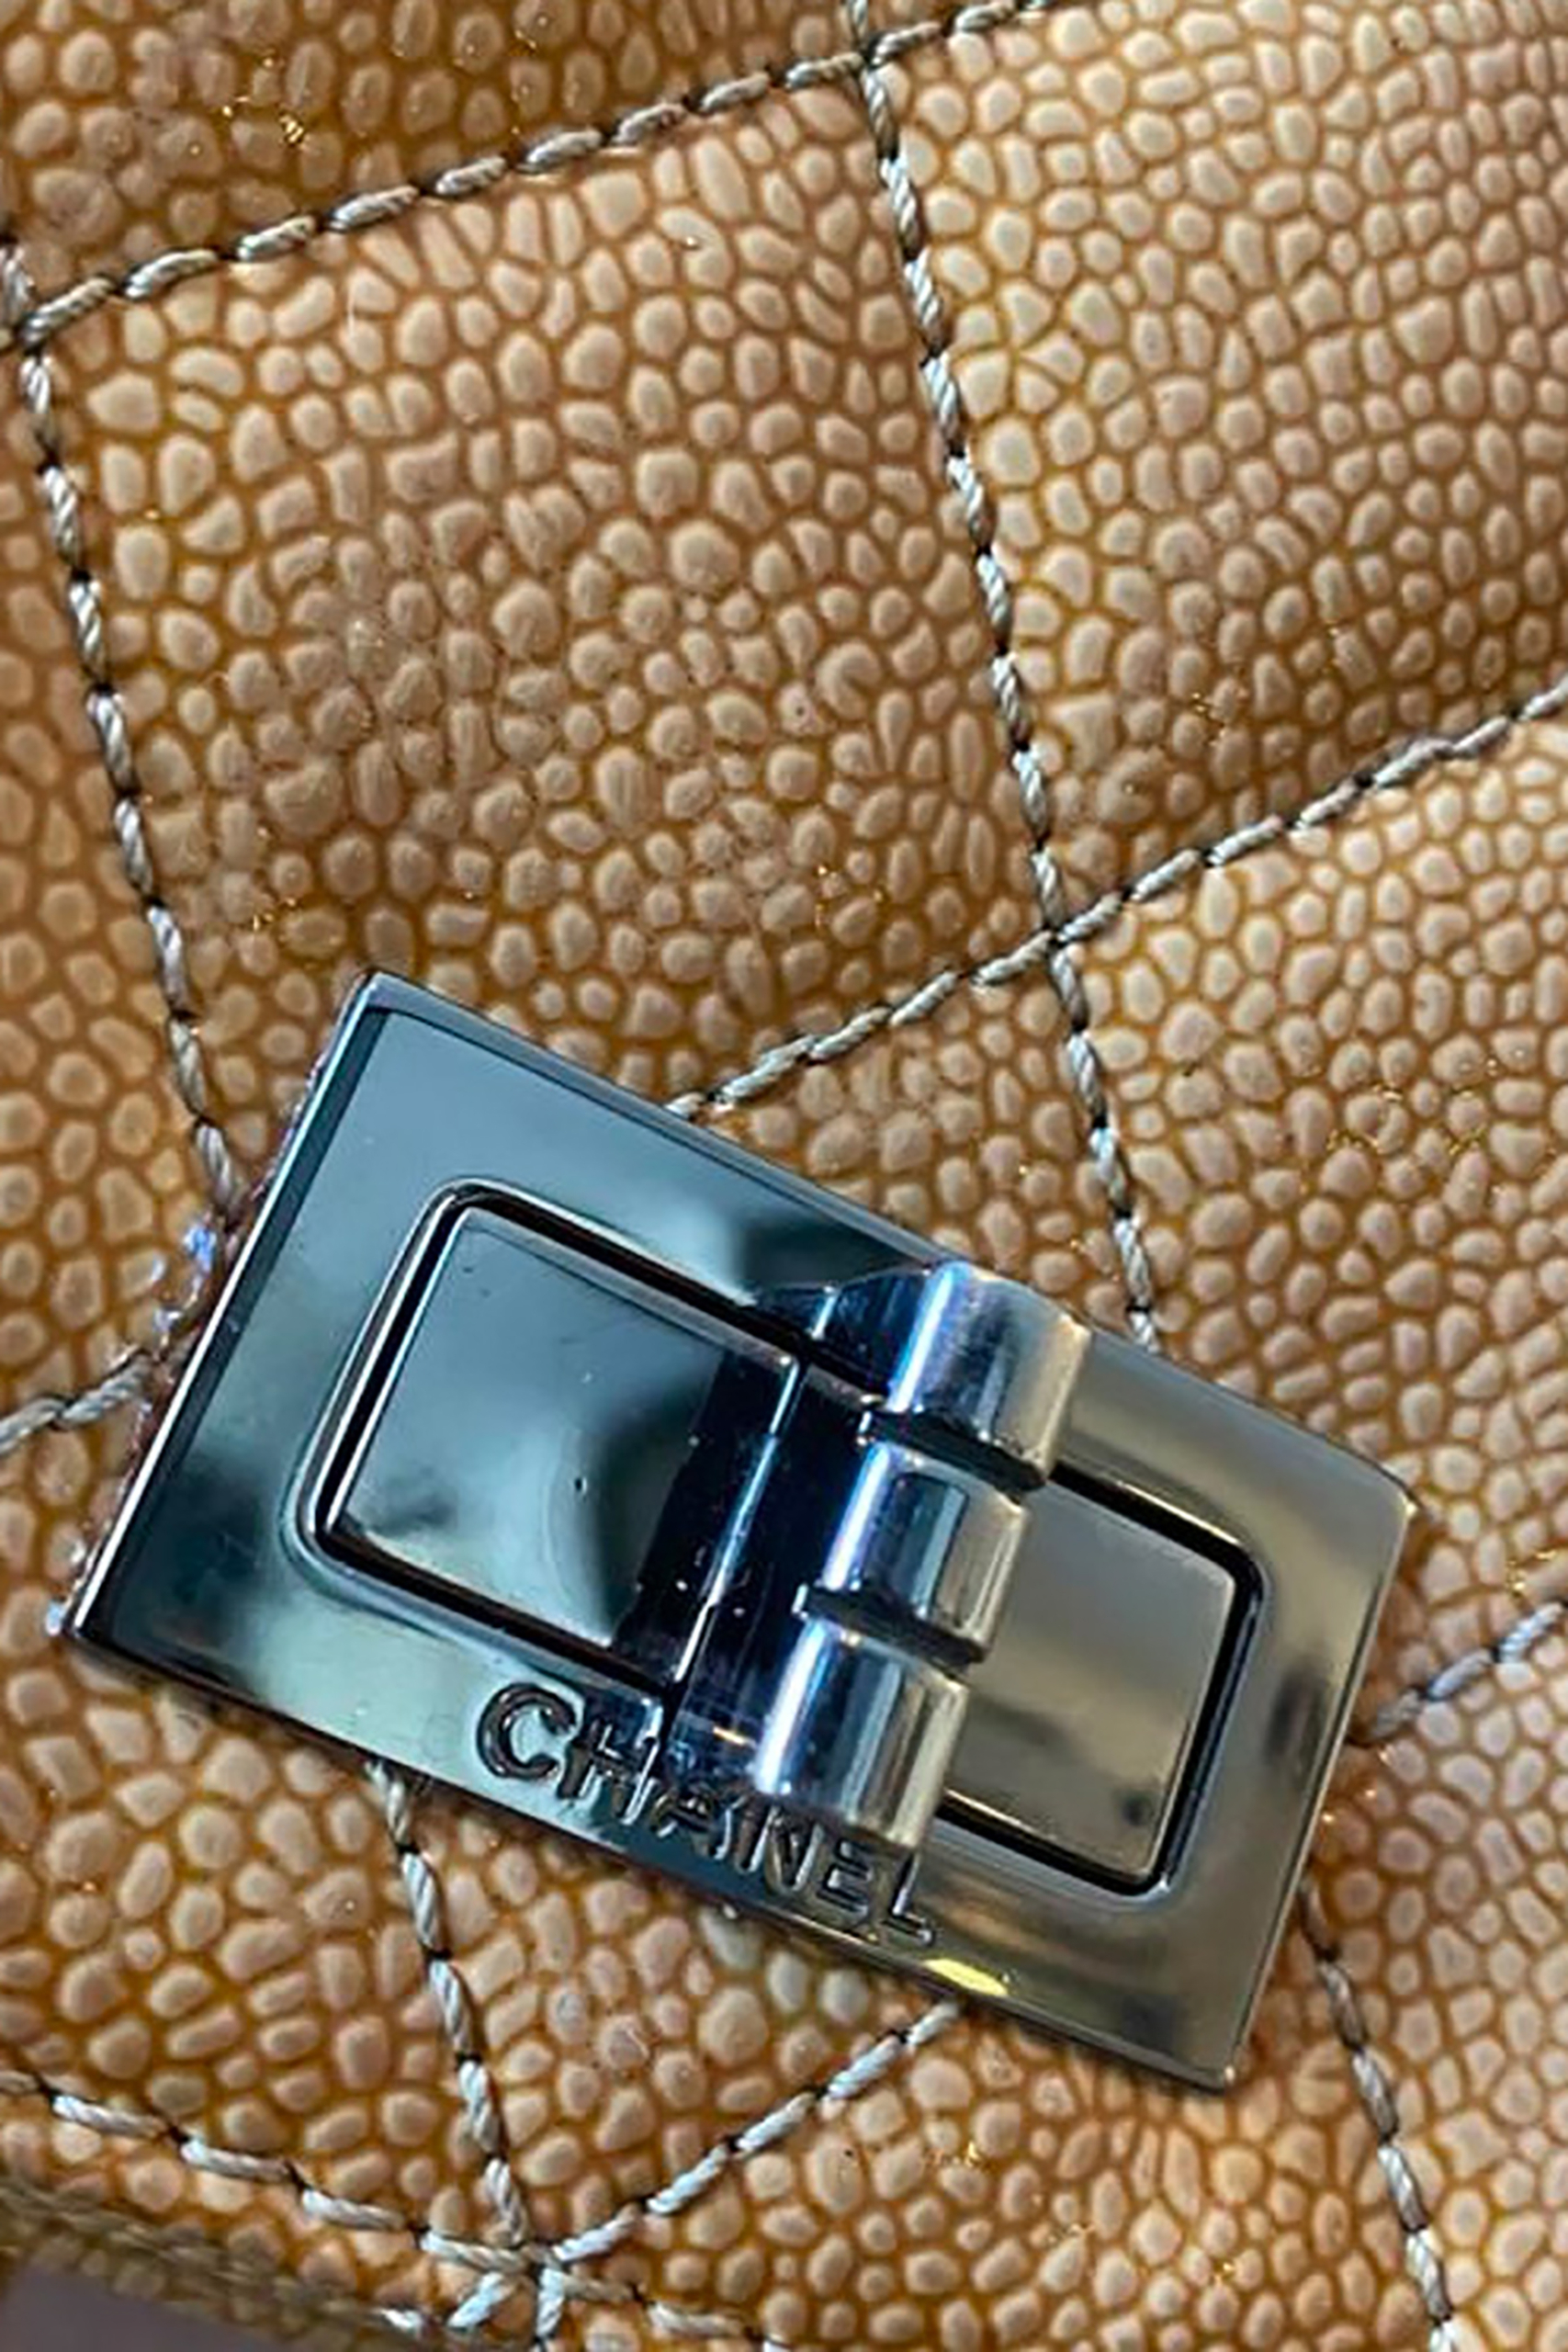 Chanel Caviar Leather Flap Bag